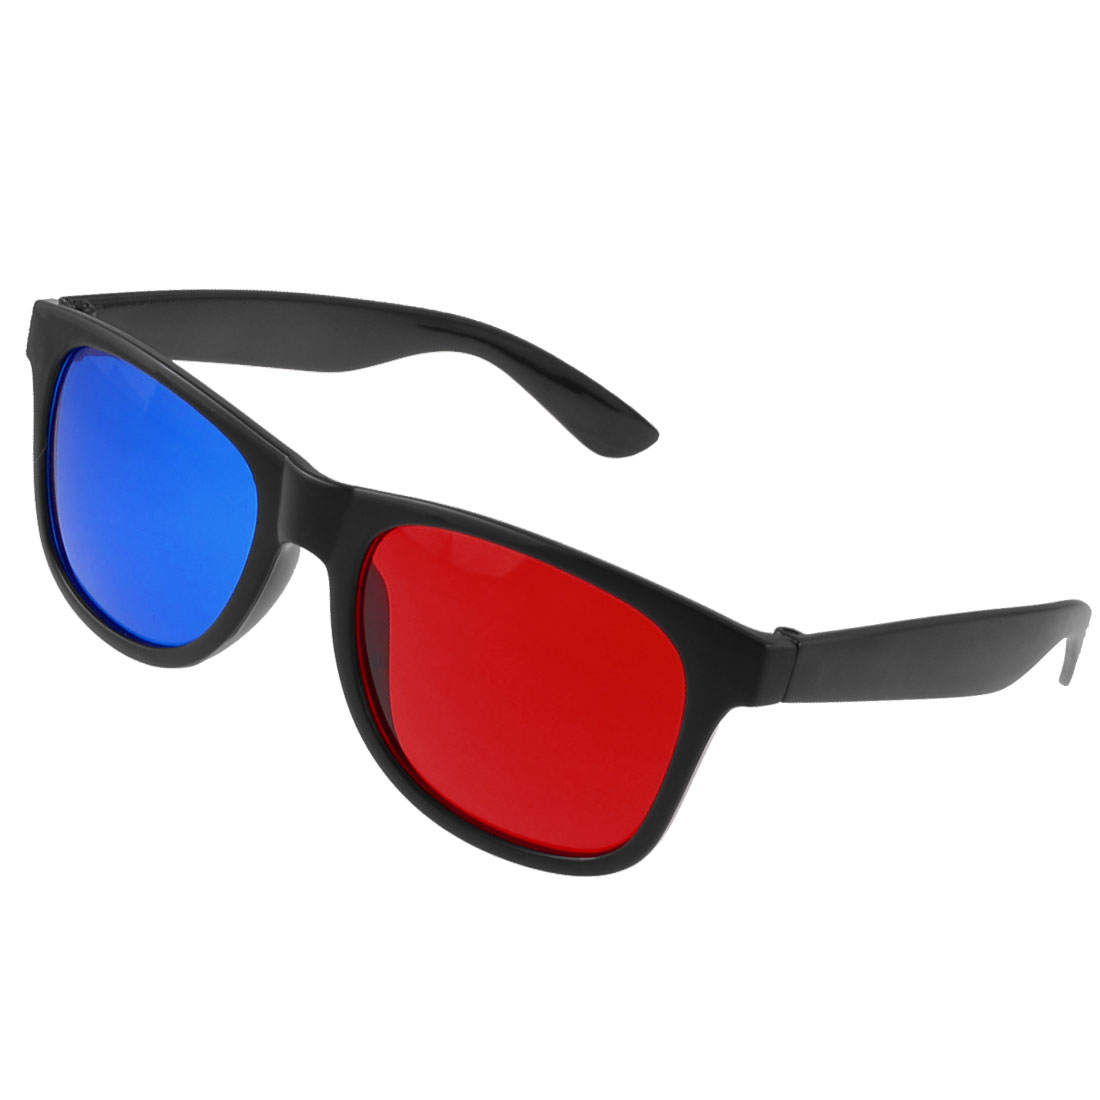 Anaglyph Moive Games Red Cyan Lens Black Frame 3D-Glasses